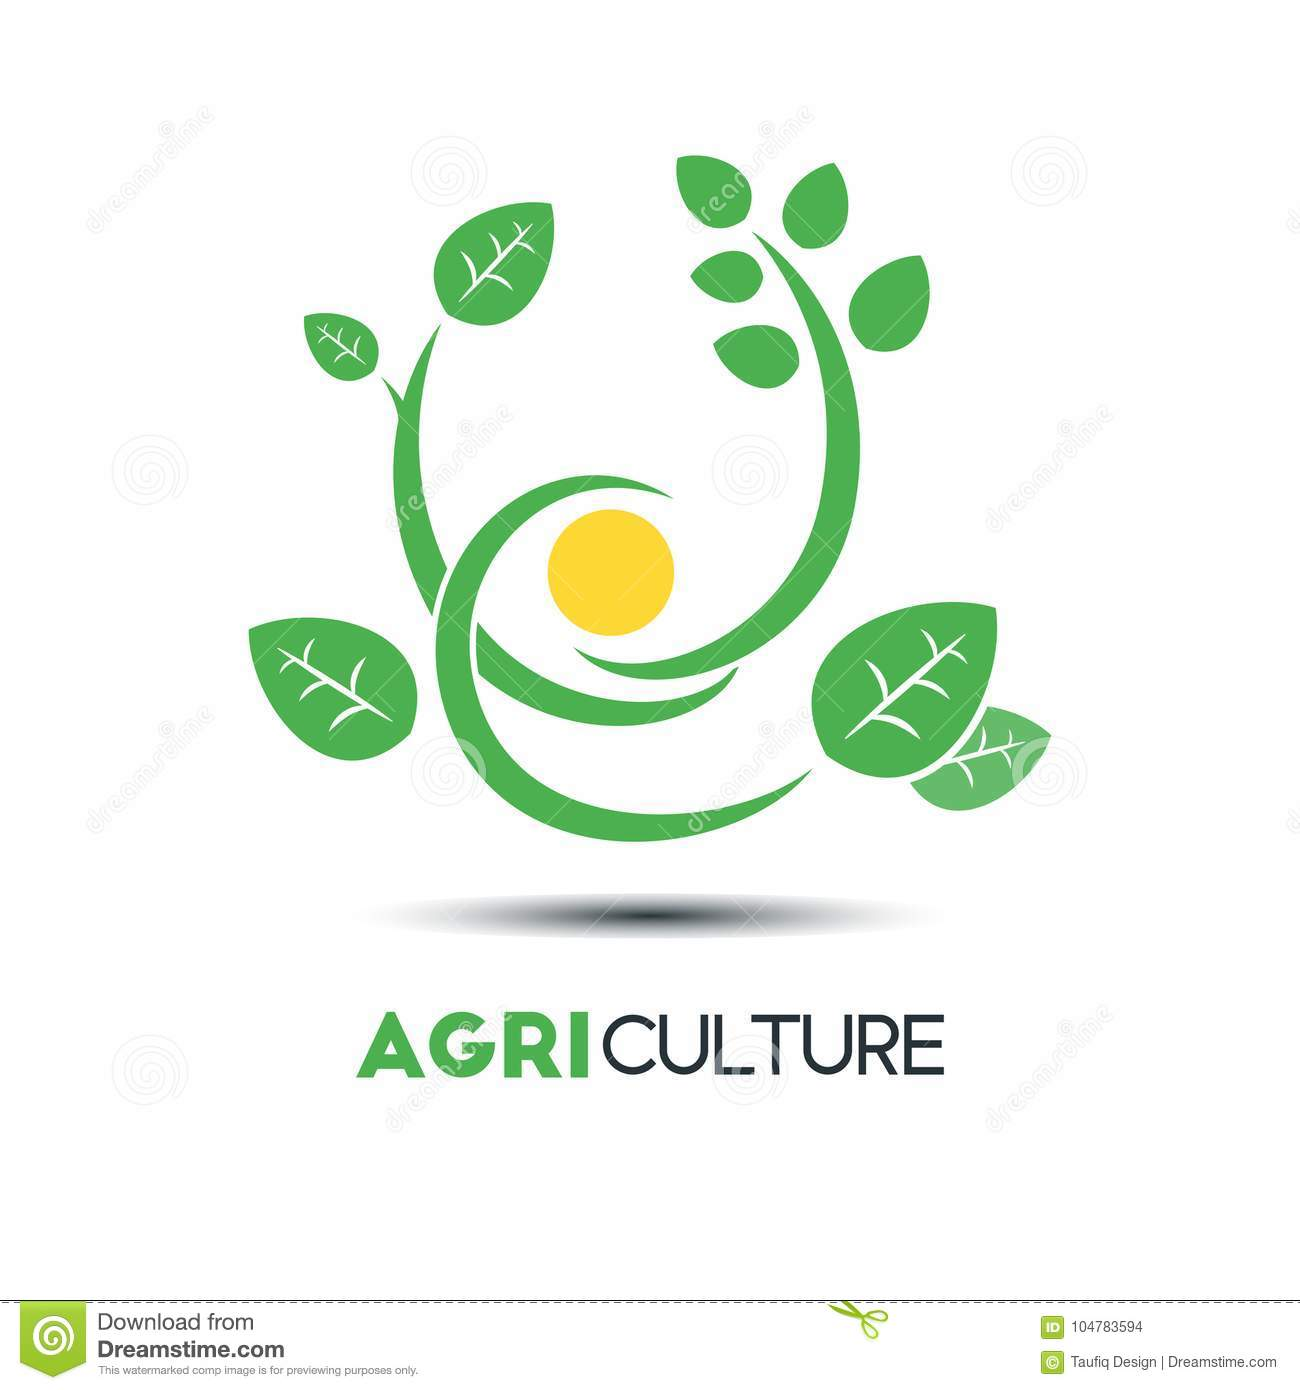 Agriculture Business Vector Logo Template. Green Leaf With Three ...